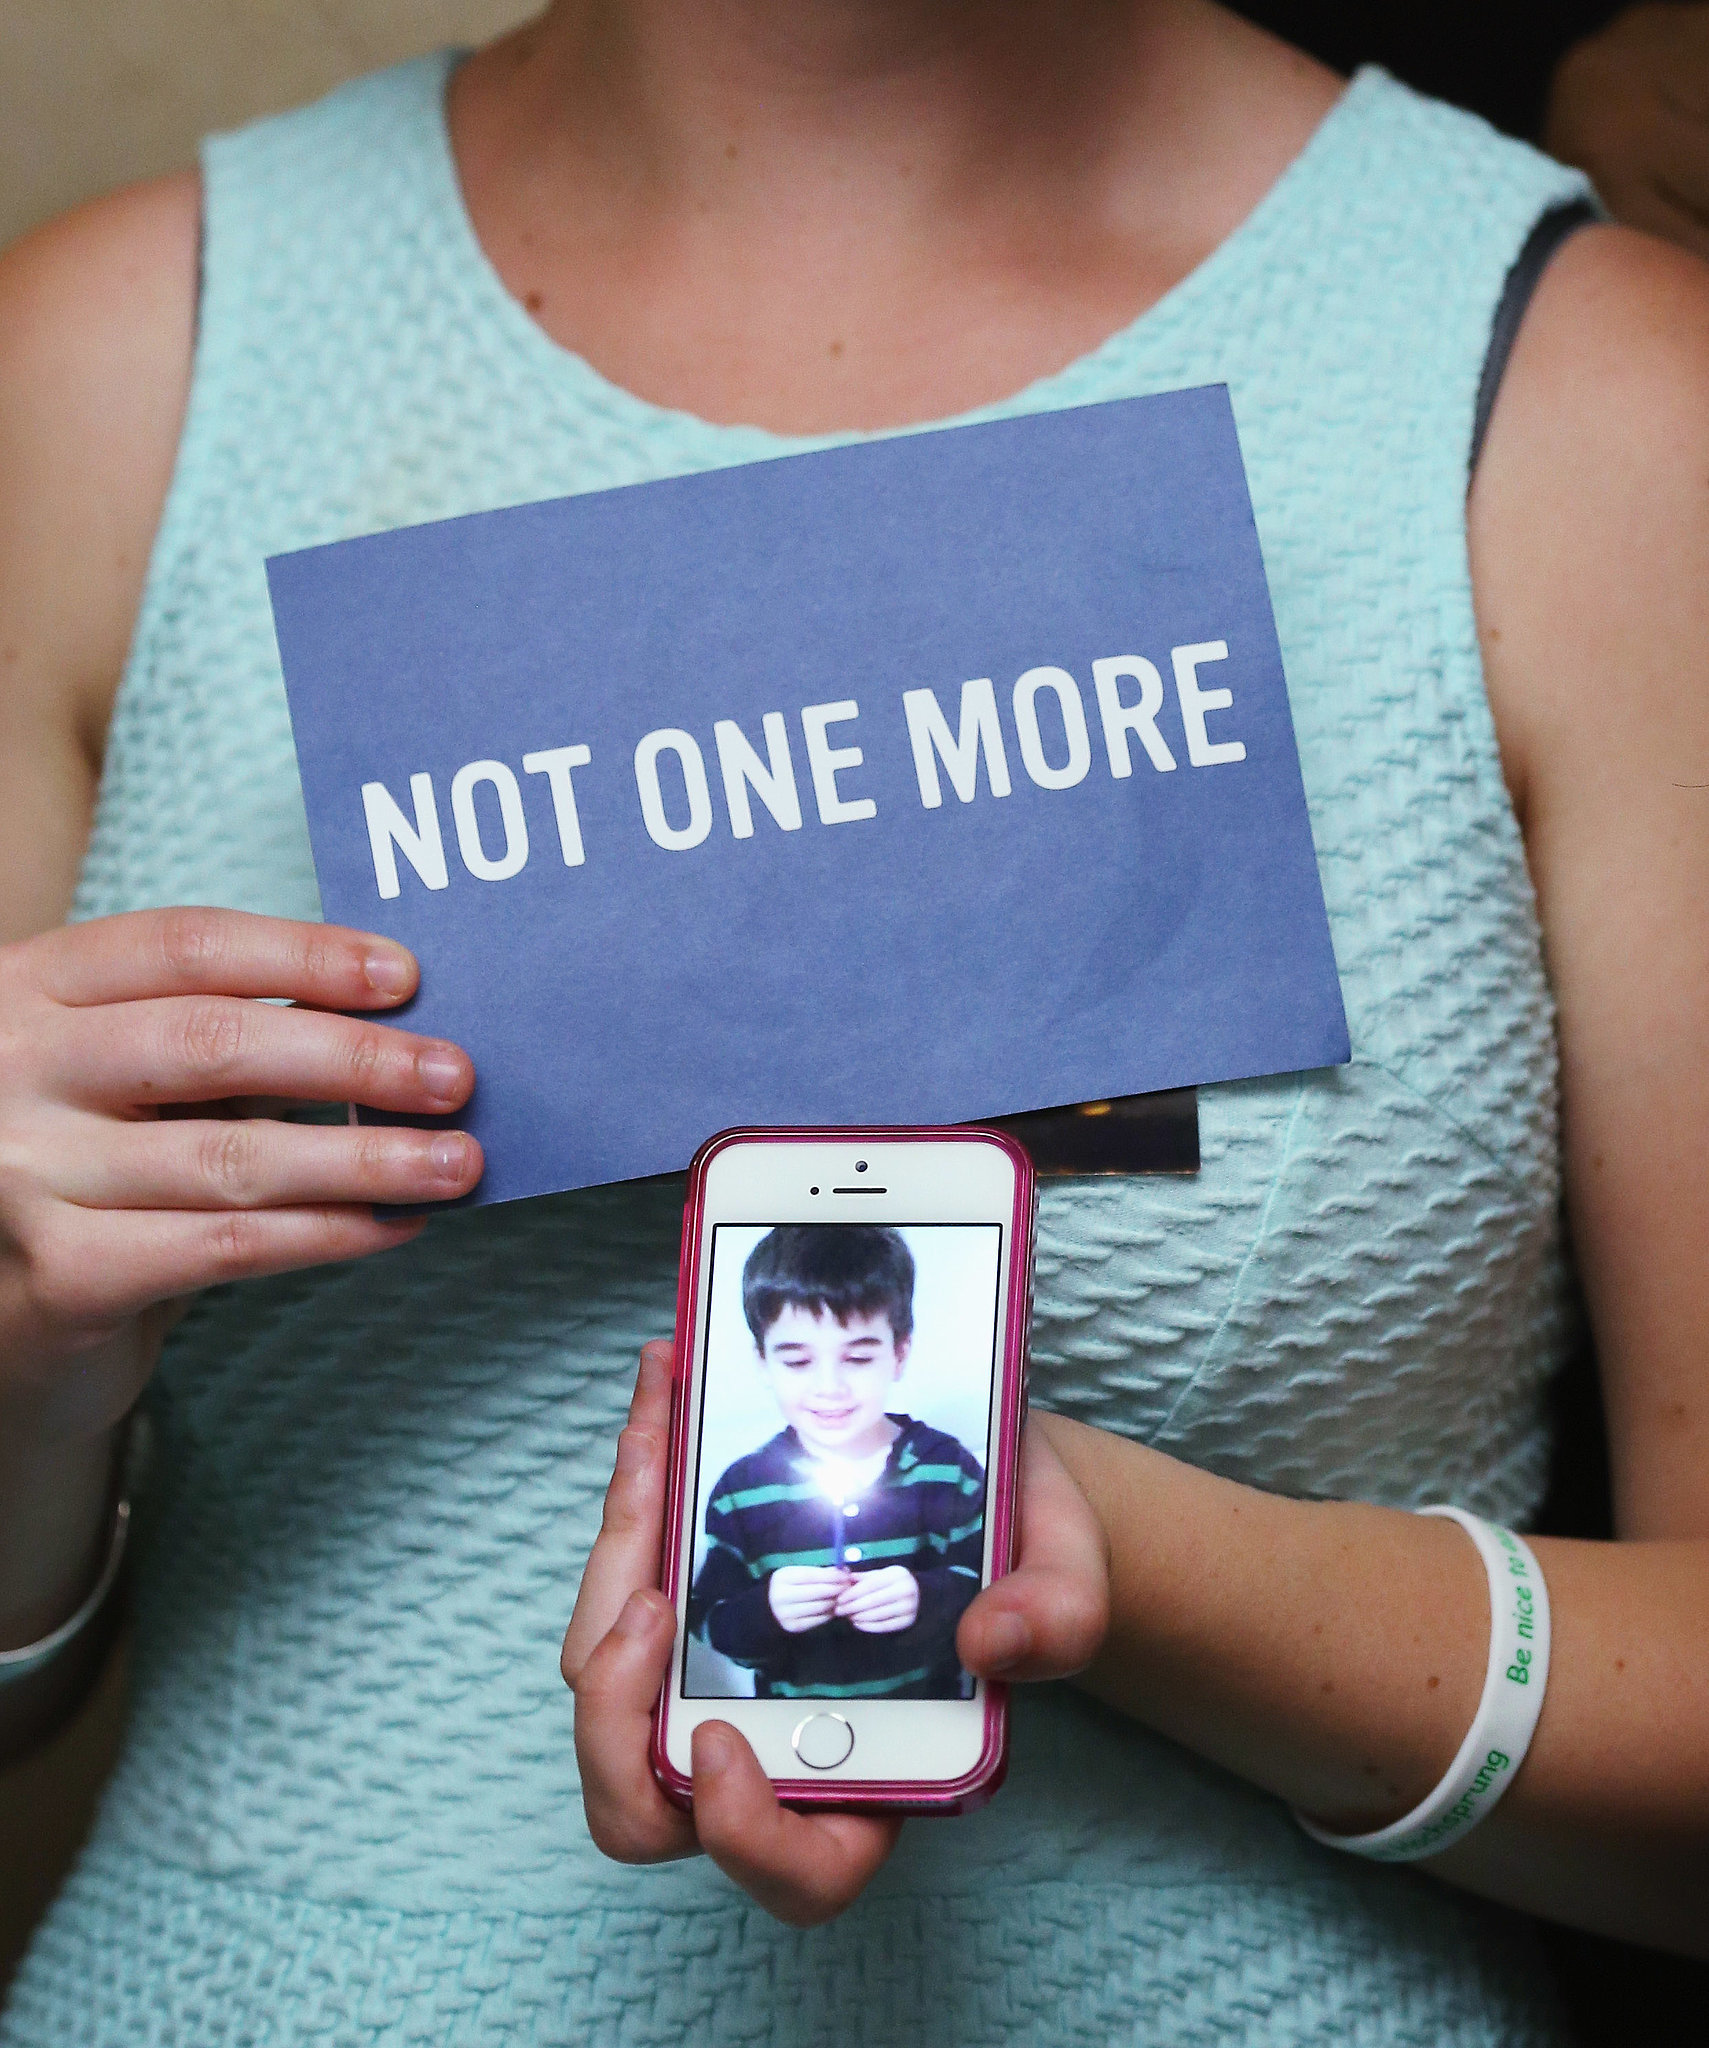 Nine children and teens are shot every day in gun accidents.